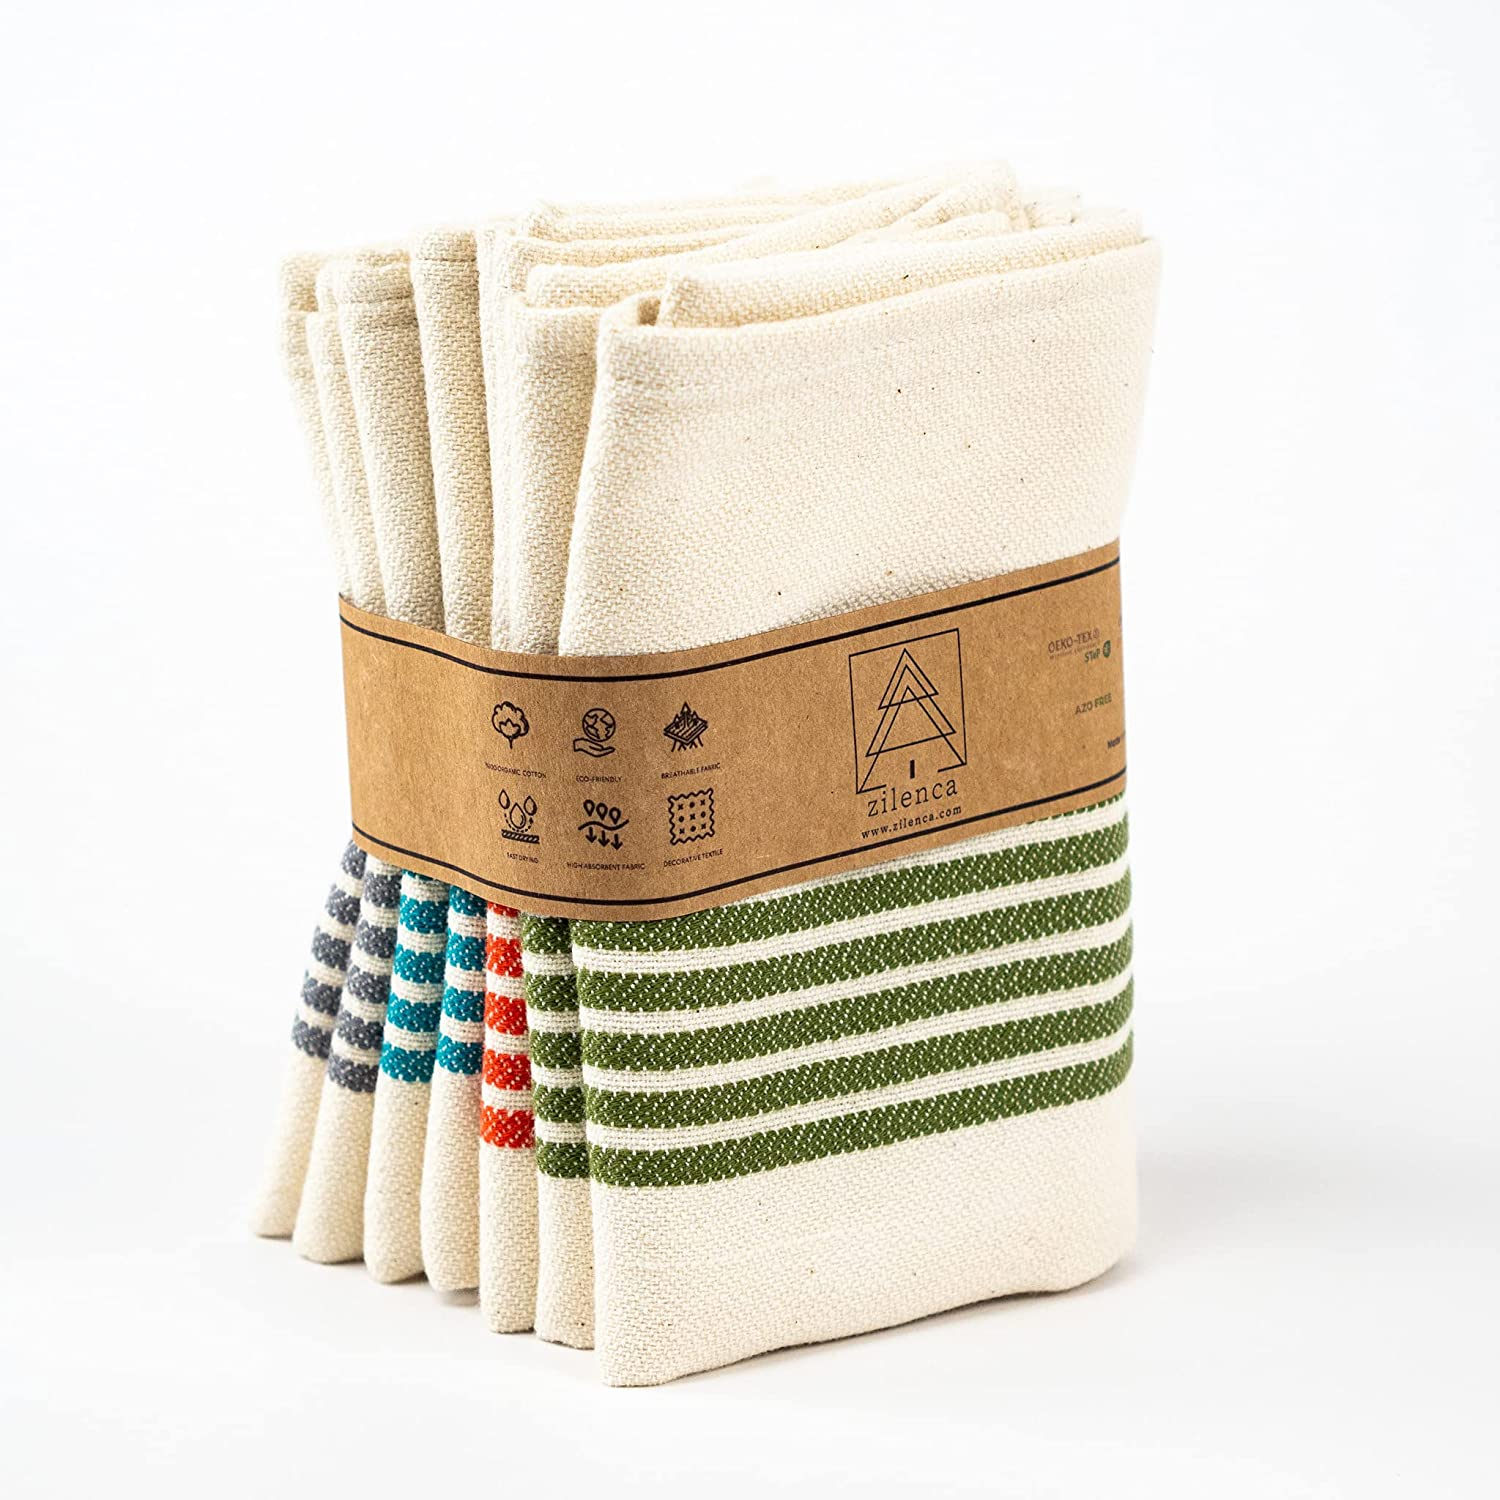 Zilenca Kitchen Towels Online limited product New products world's highest quality popular Set of 4 17x30 %100 Cotton Towel